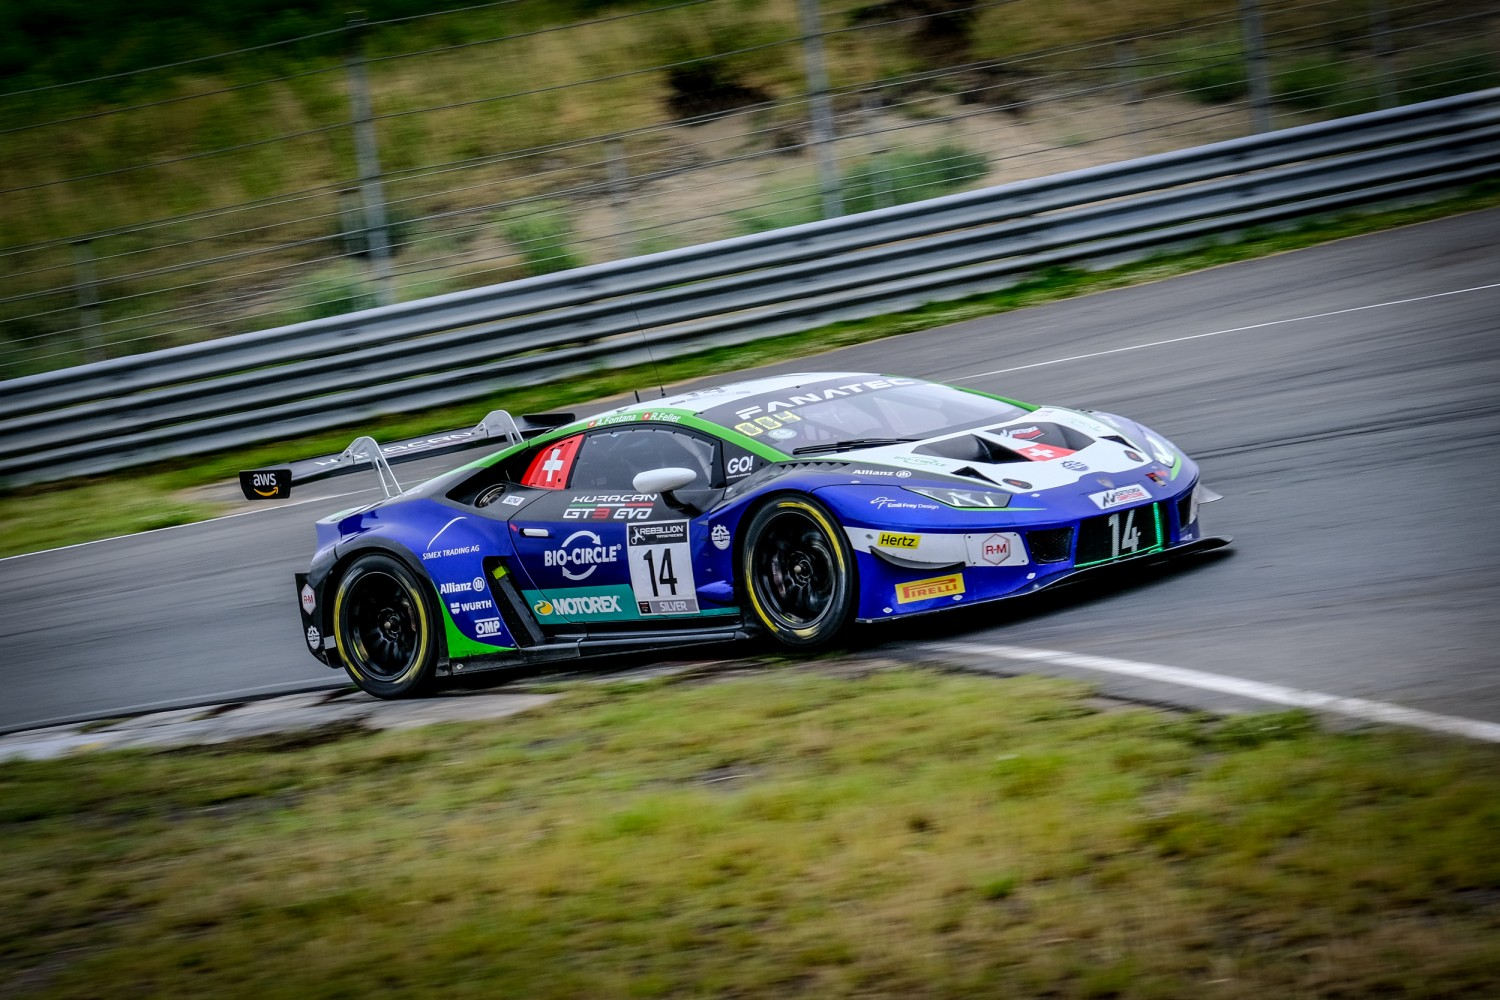 Feller flies to pole in Emil Frey Racing Lamborghini with outstanding late lap